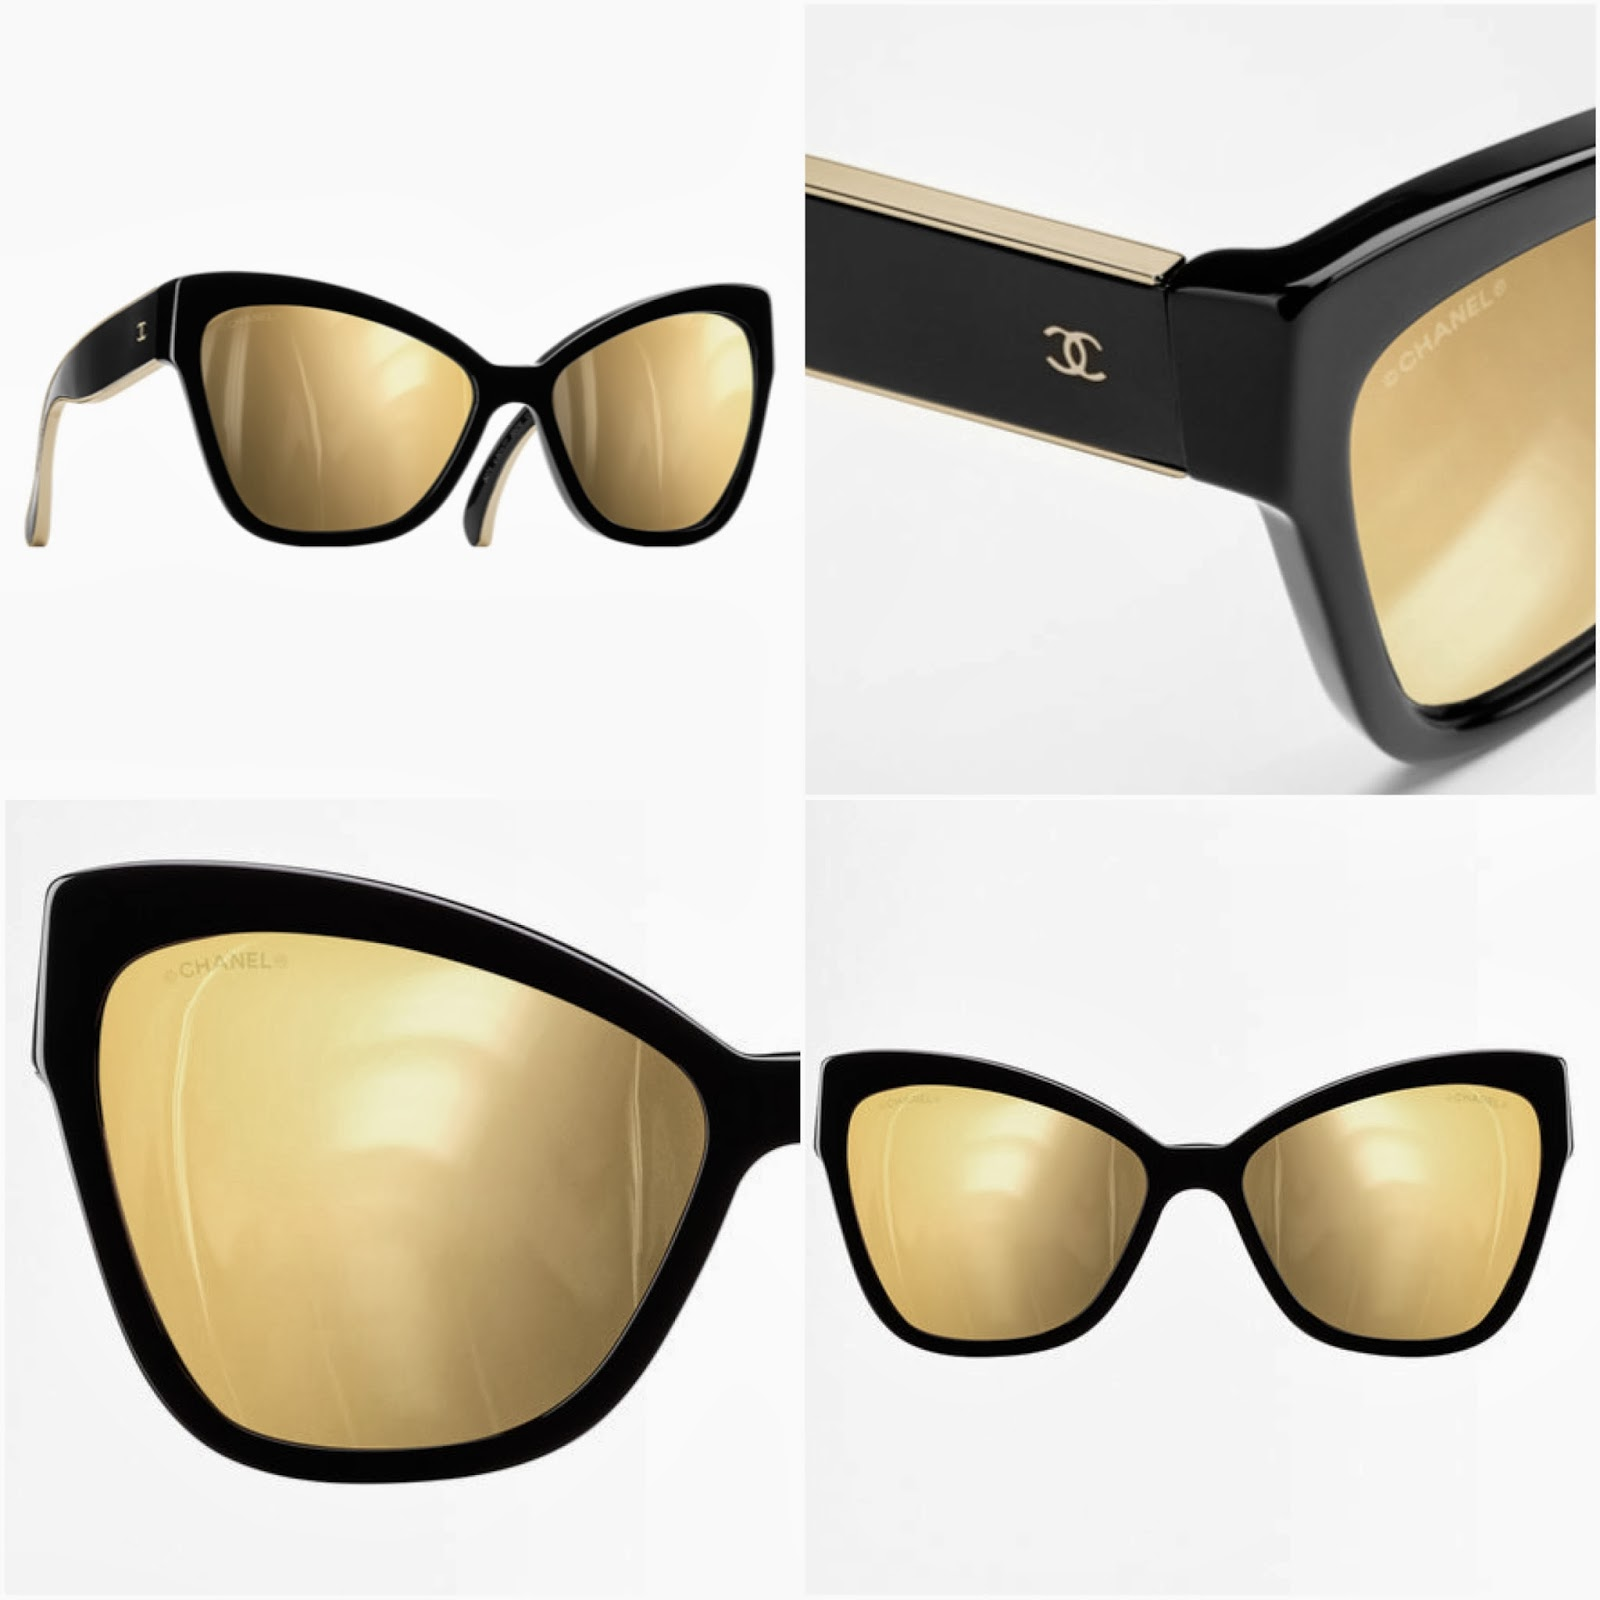 Inspires Mi In Mind Chanel Cat Eye Sunglasses Gold